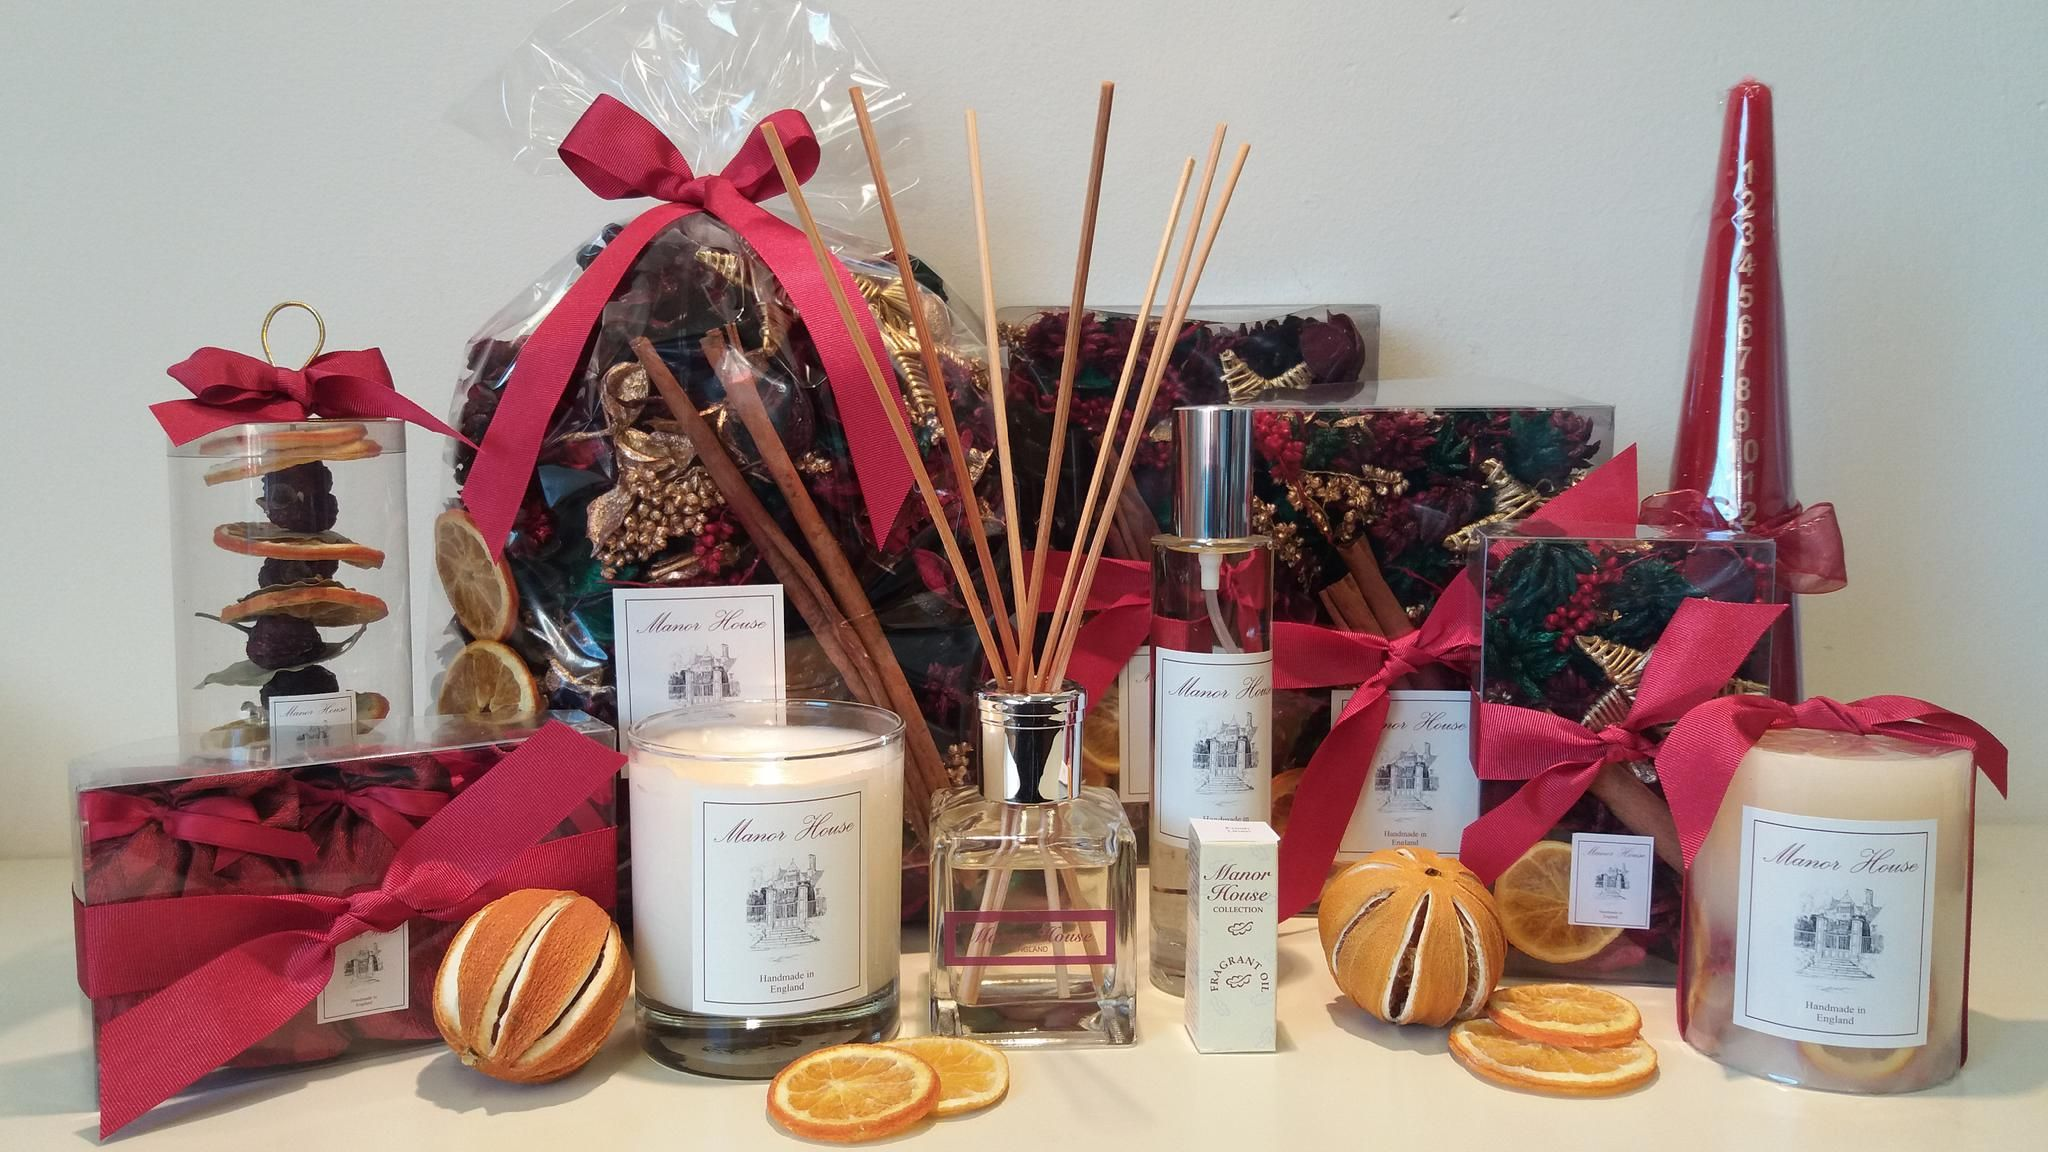 Manor House Home Fragrance Ltd